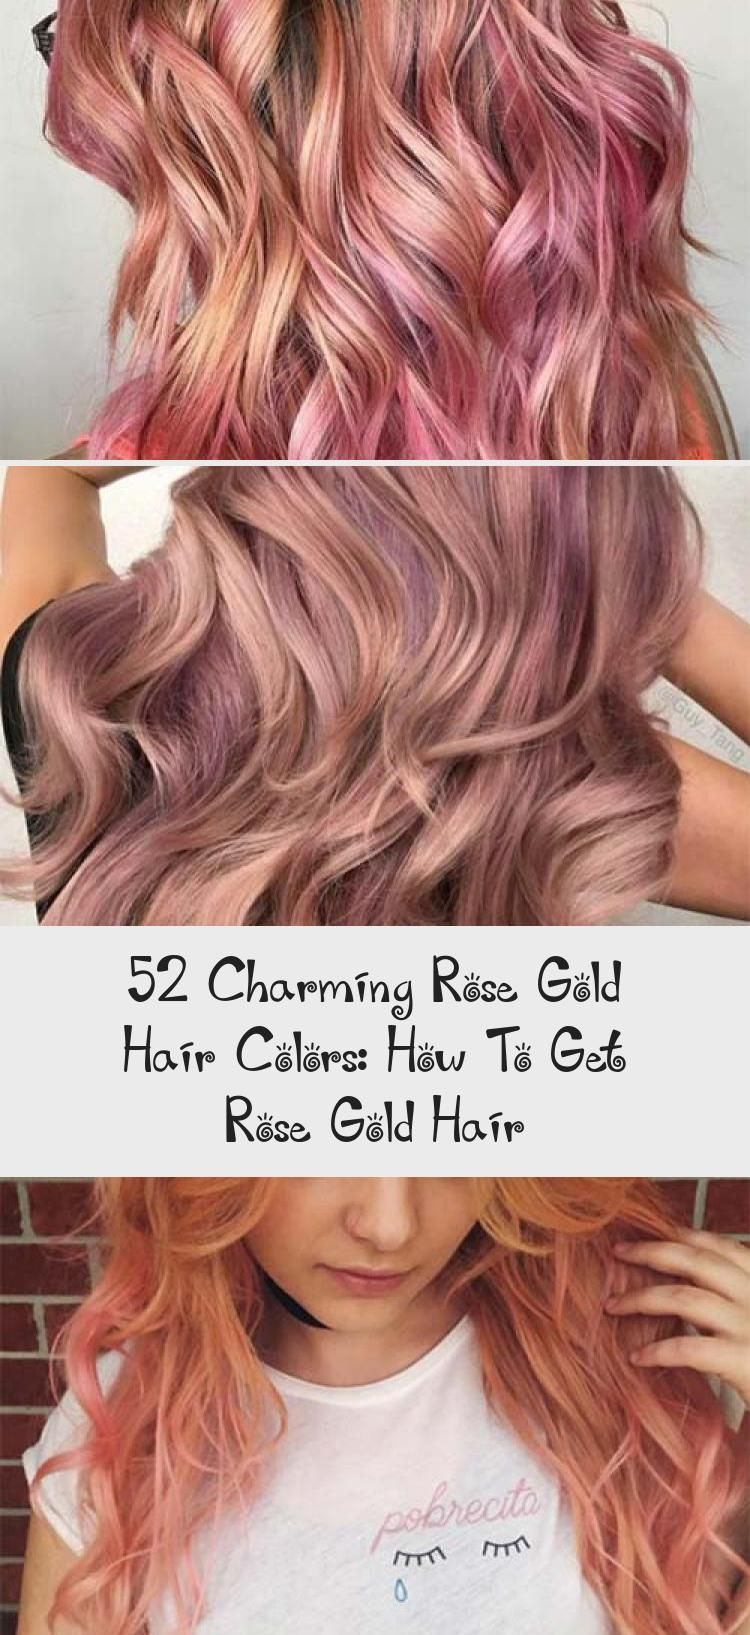 Excellent Pics Copper Rose Gold Hair Style Issues Looked At The Head Of Hair Coloration Trends Upon Your I Gold Hair Colors Rose Gold Hair Hair Color Rose Gold